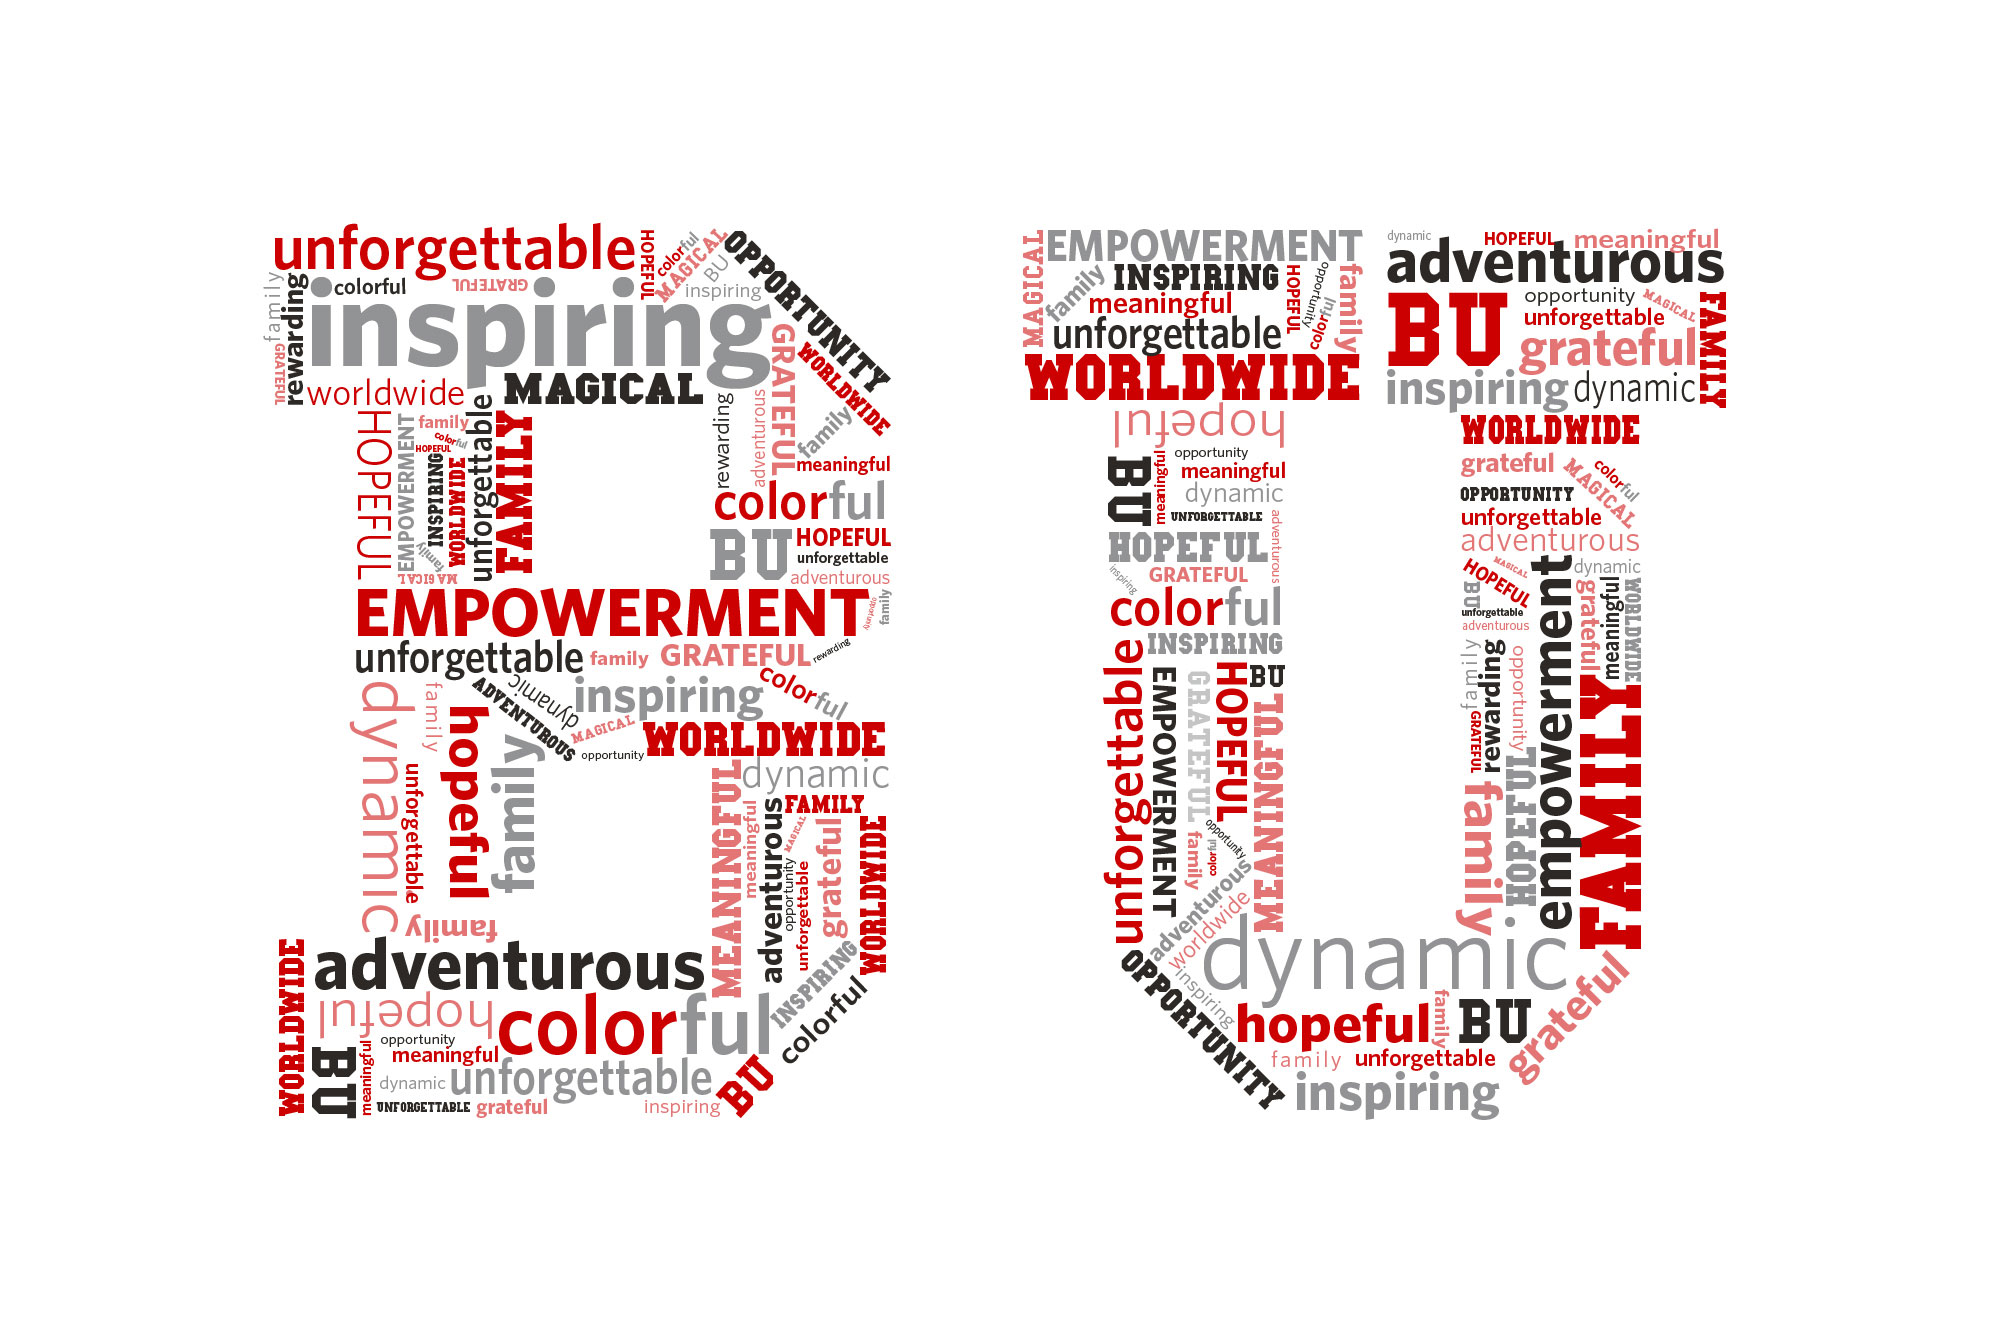 Word splash that forms the letters BU using the words inspiring, adventurous, empowerment, worldwide, magical, hopeful, colorful, dynamic, family, BU, unforgettable, grateful, inspiring, and opportunity in scarlet, light red, black and gray.